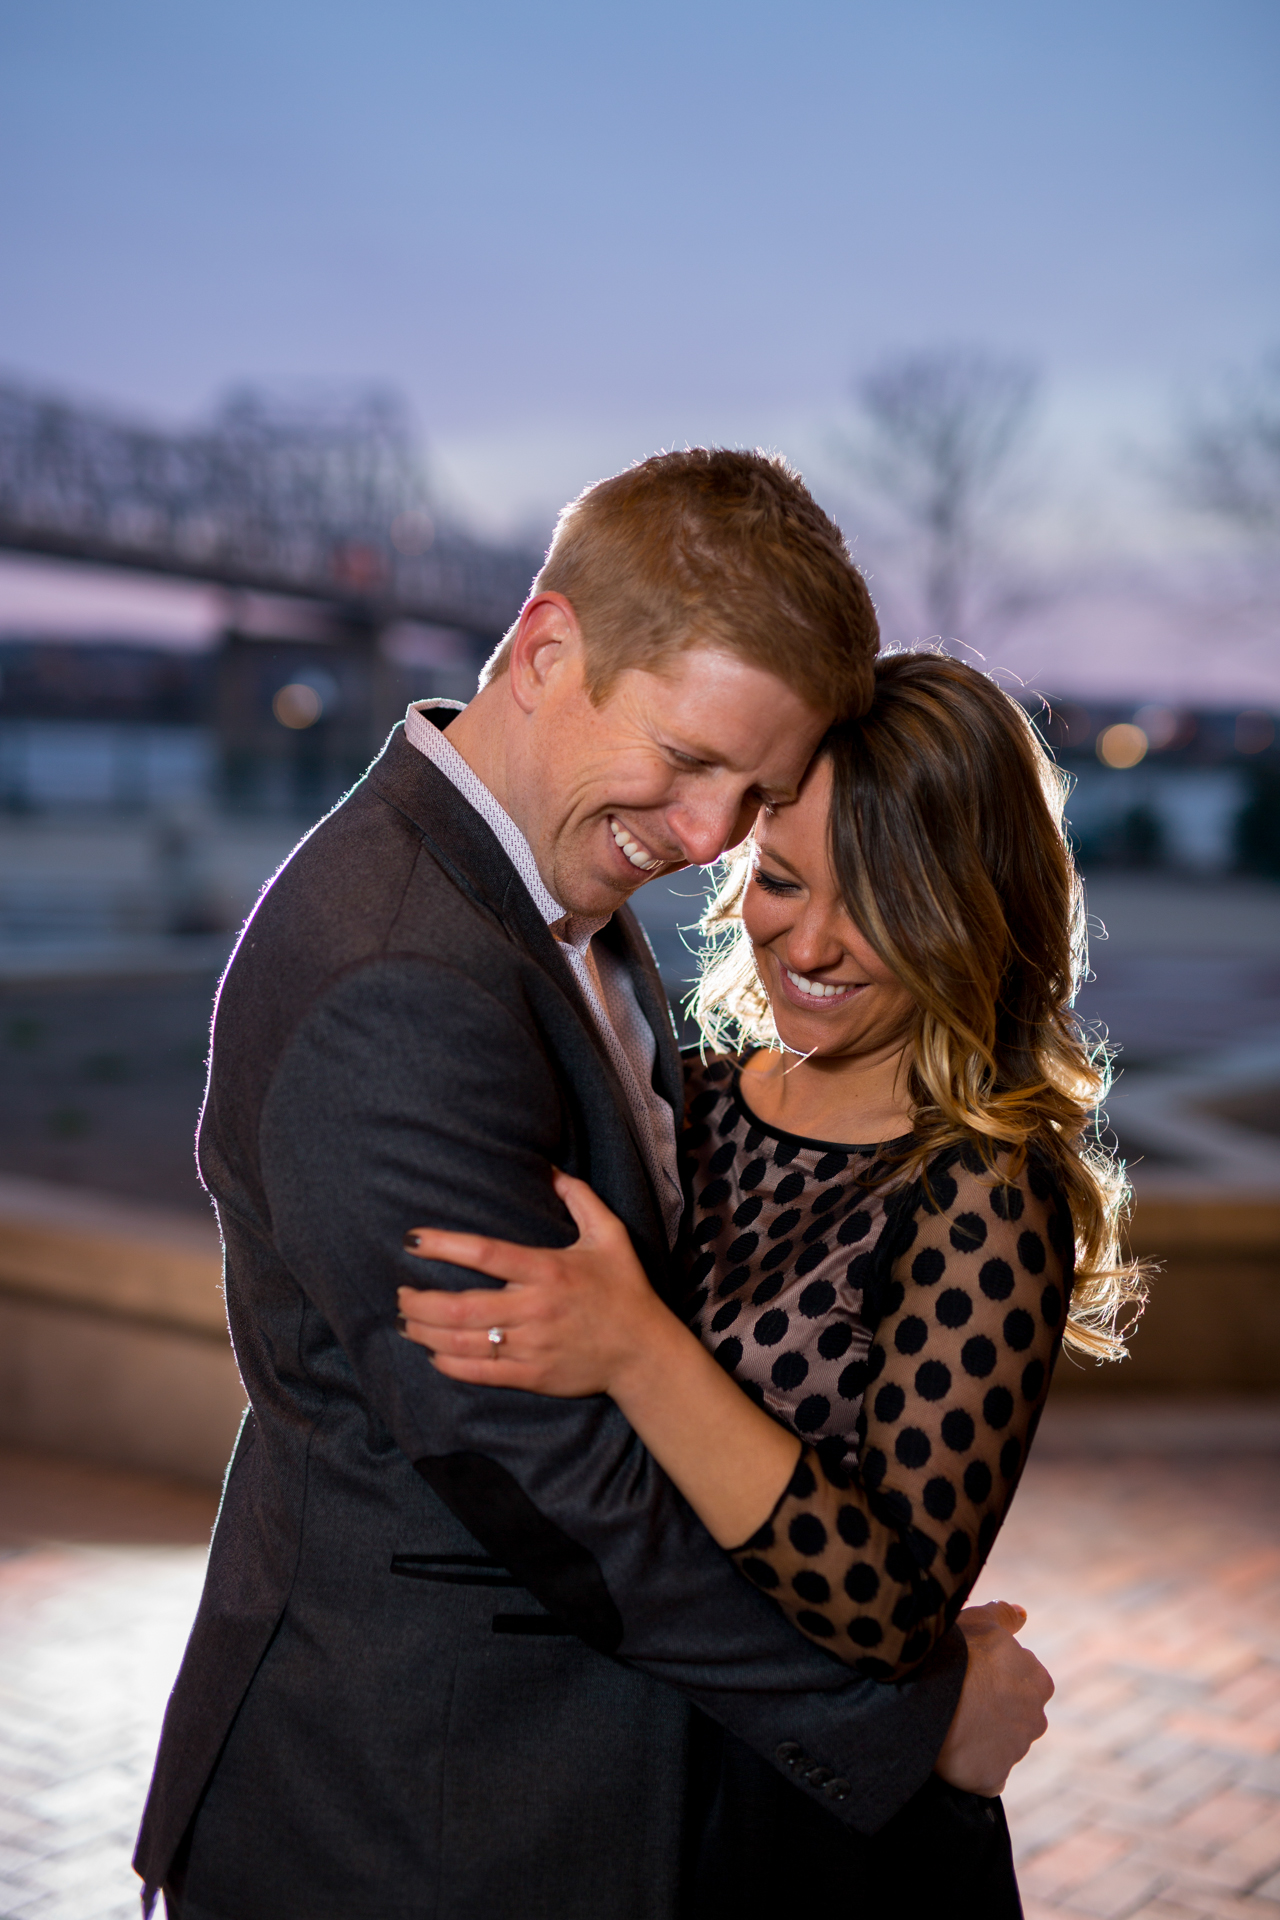 peoria illinois bloomington normal engagement pictures peoria riverfront wedding photographer-20.jpg